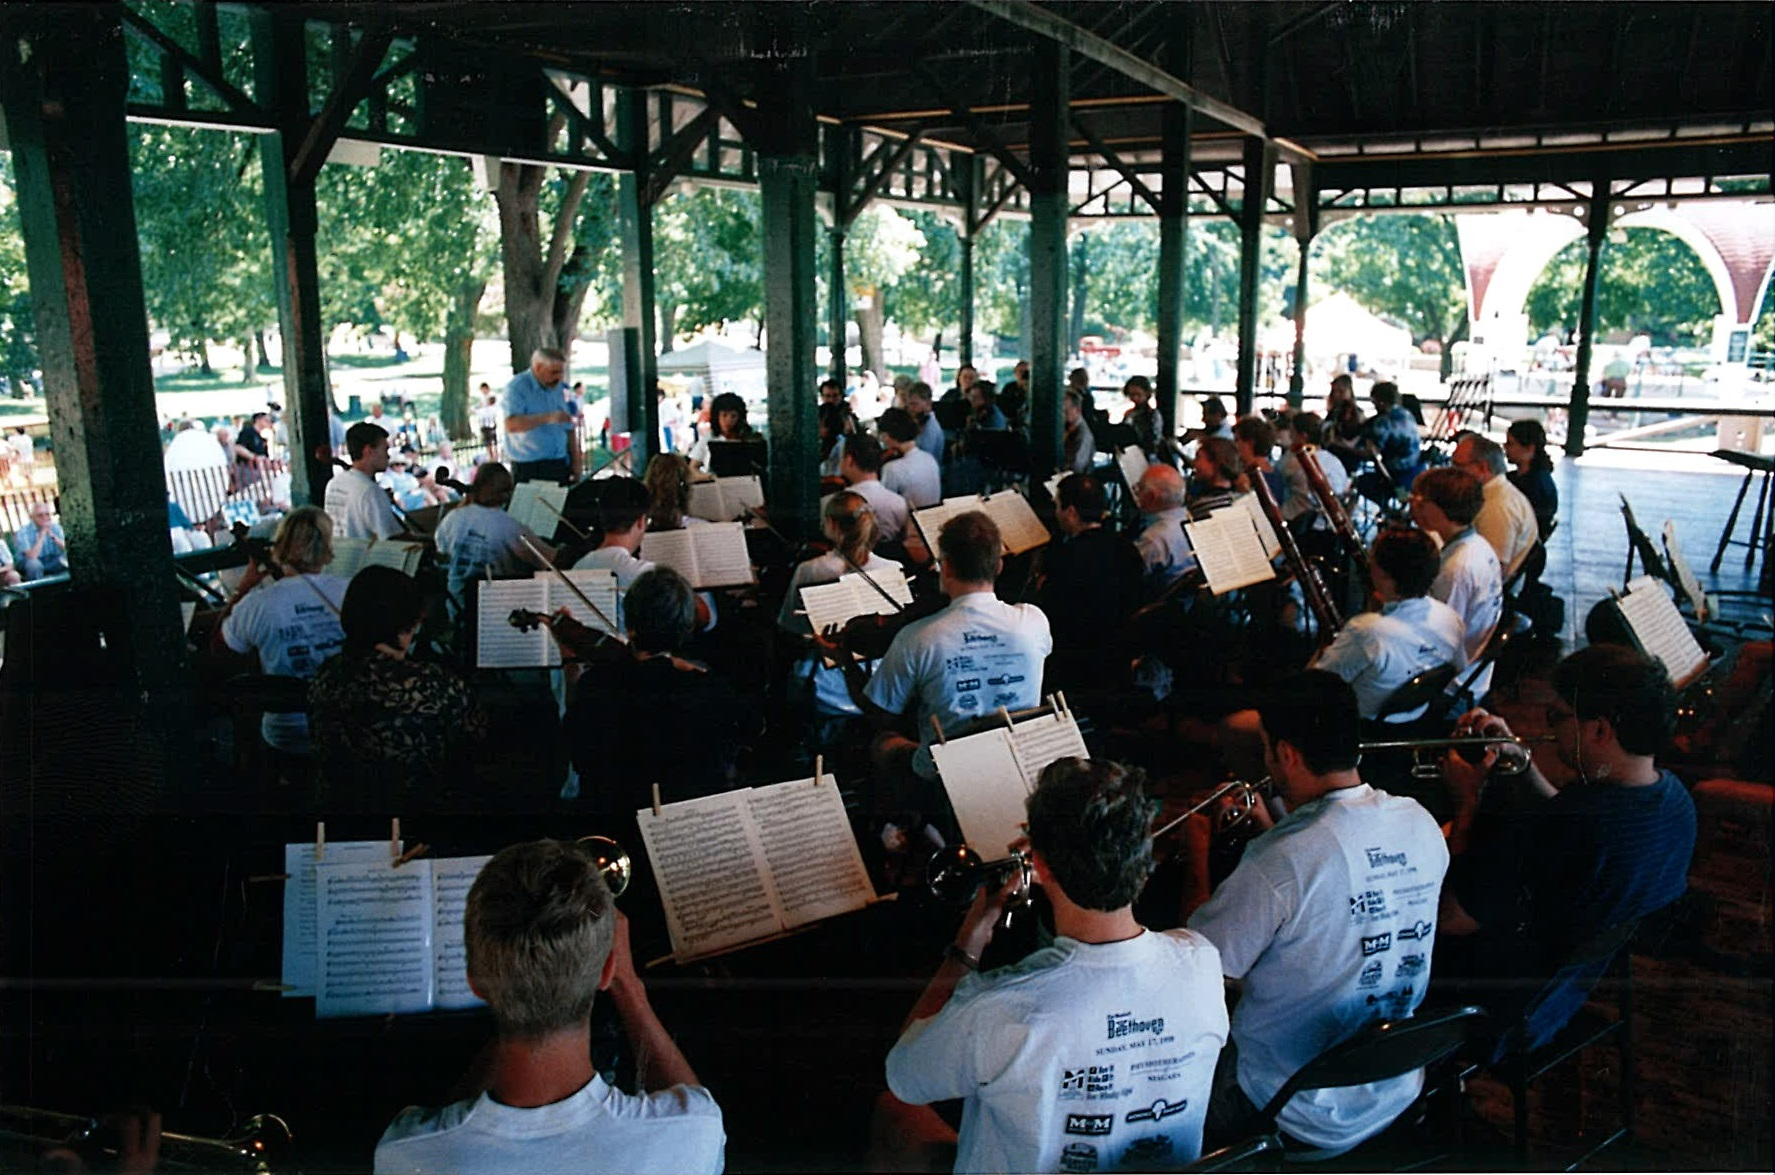 Orchestra from behind playing in bandshell